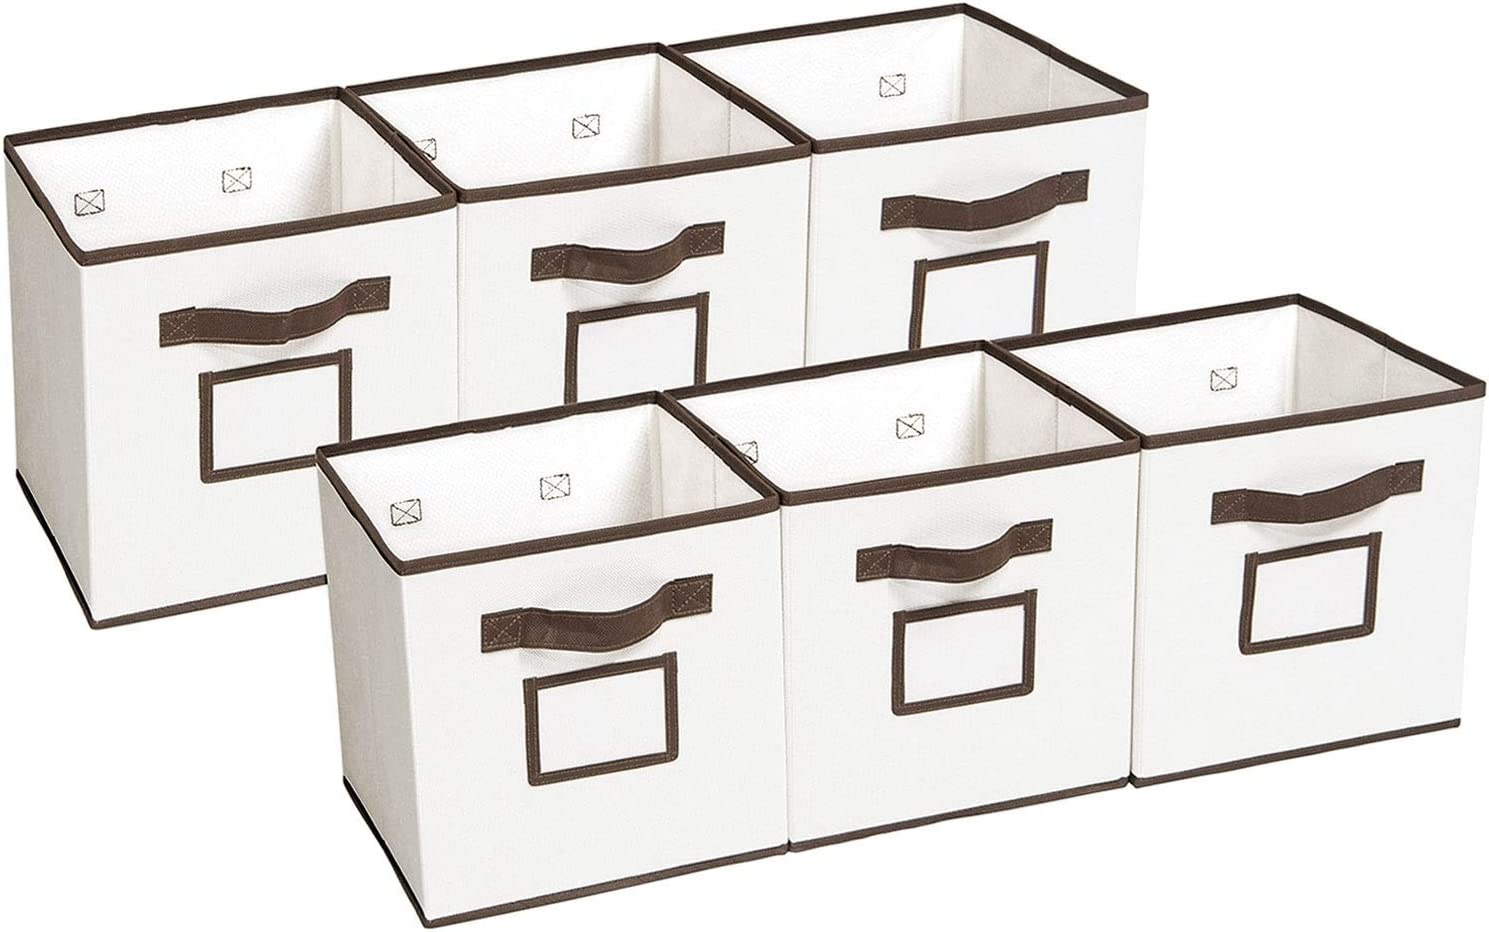 MaidMAX Foldable Storage Cubes with Label Holders Closet Nursery Organization Set of 6 Collapsible Storage Bins Cloth Organizers Drawers Containers with Dual Handles for Shelves